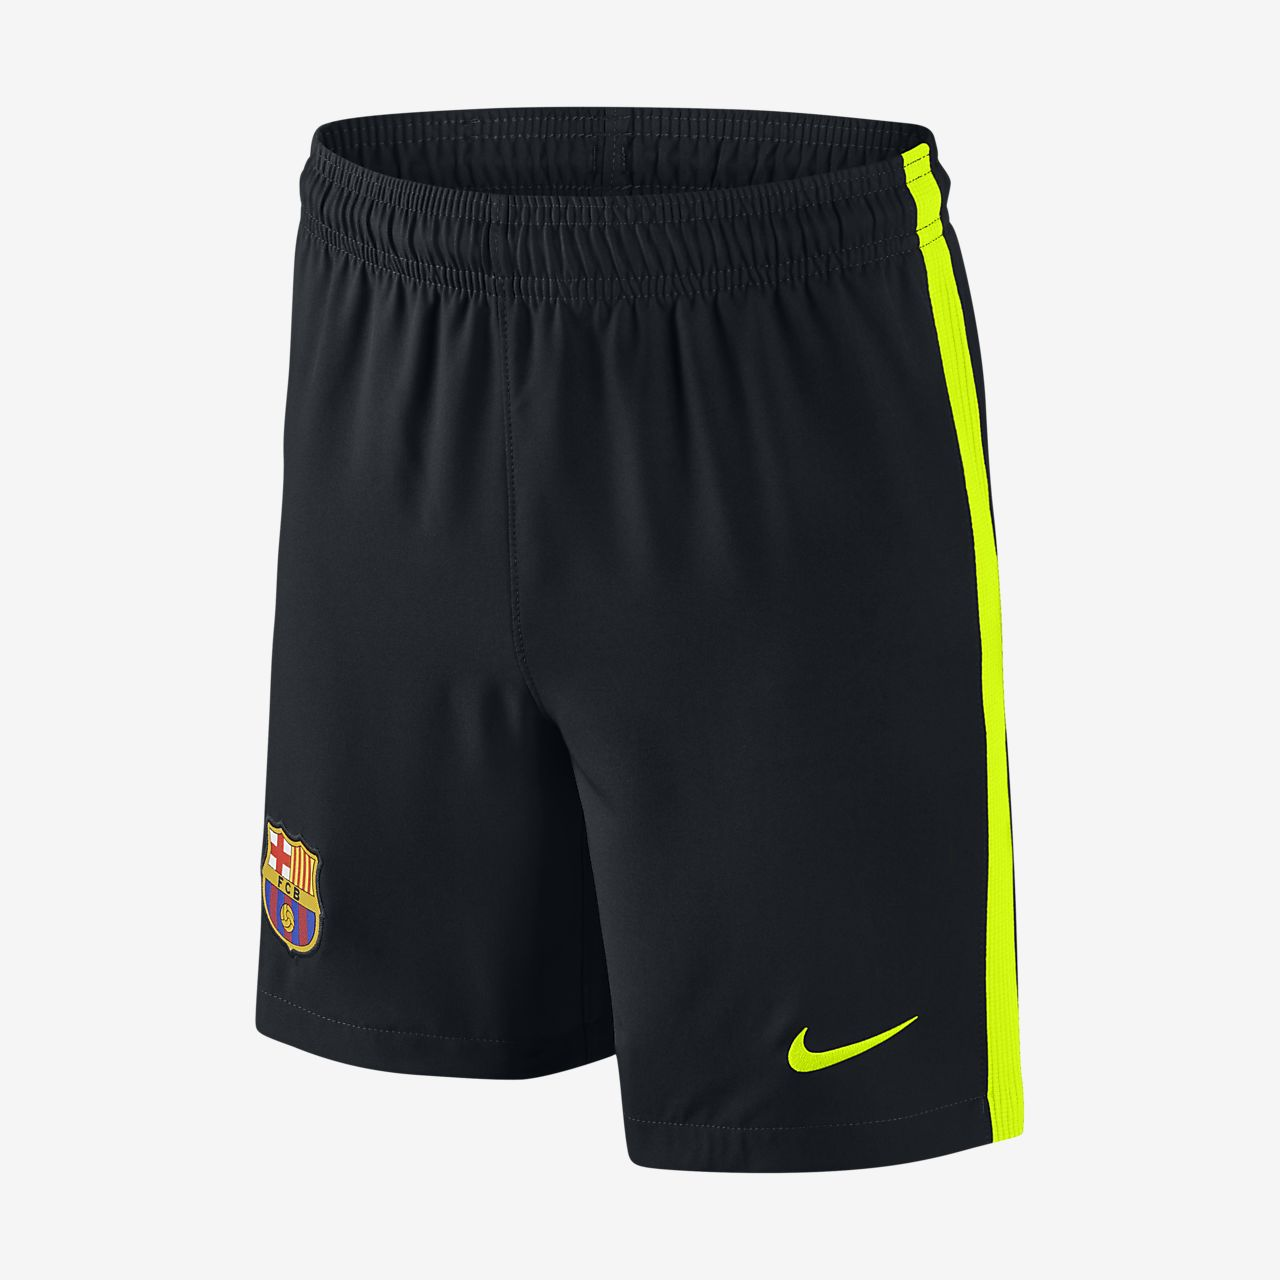 2016/17 FC Barcelona Stadium Home/Away/Third/Goalkeeper Older Kids' Football Shorts